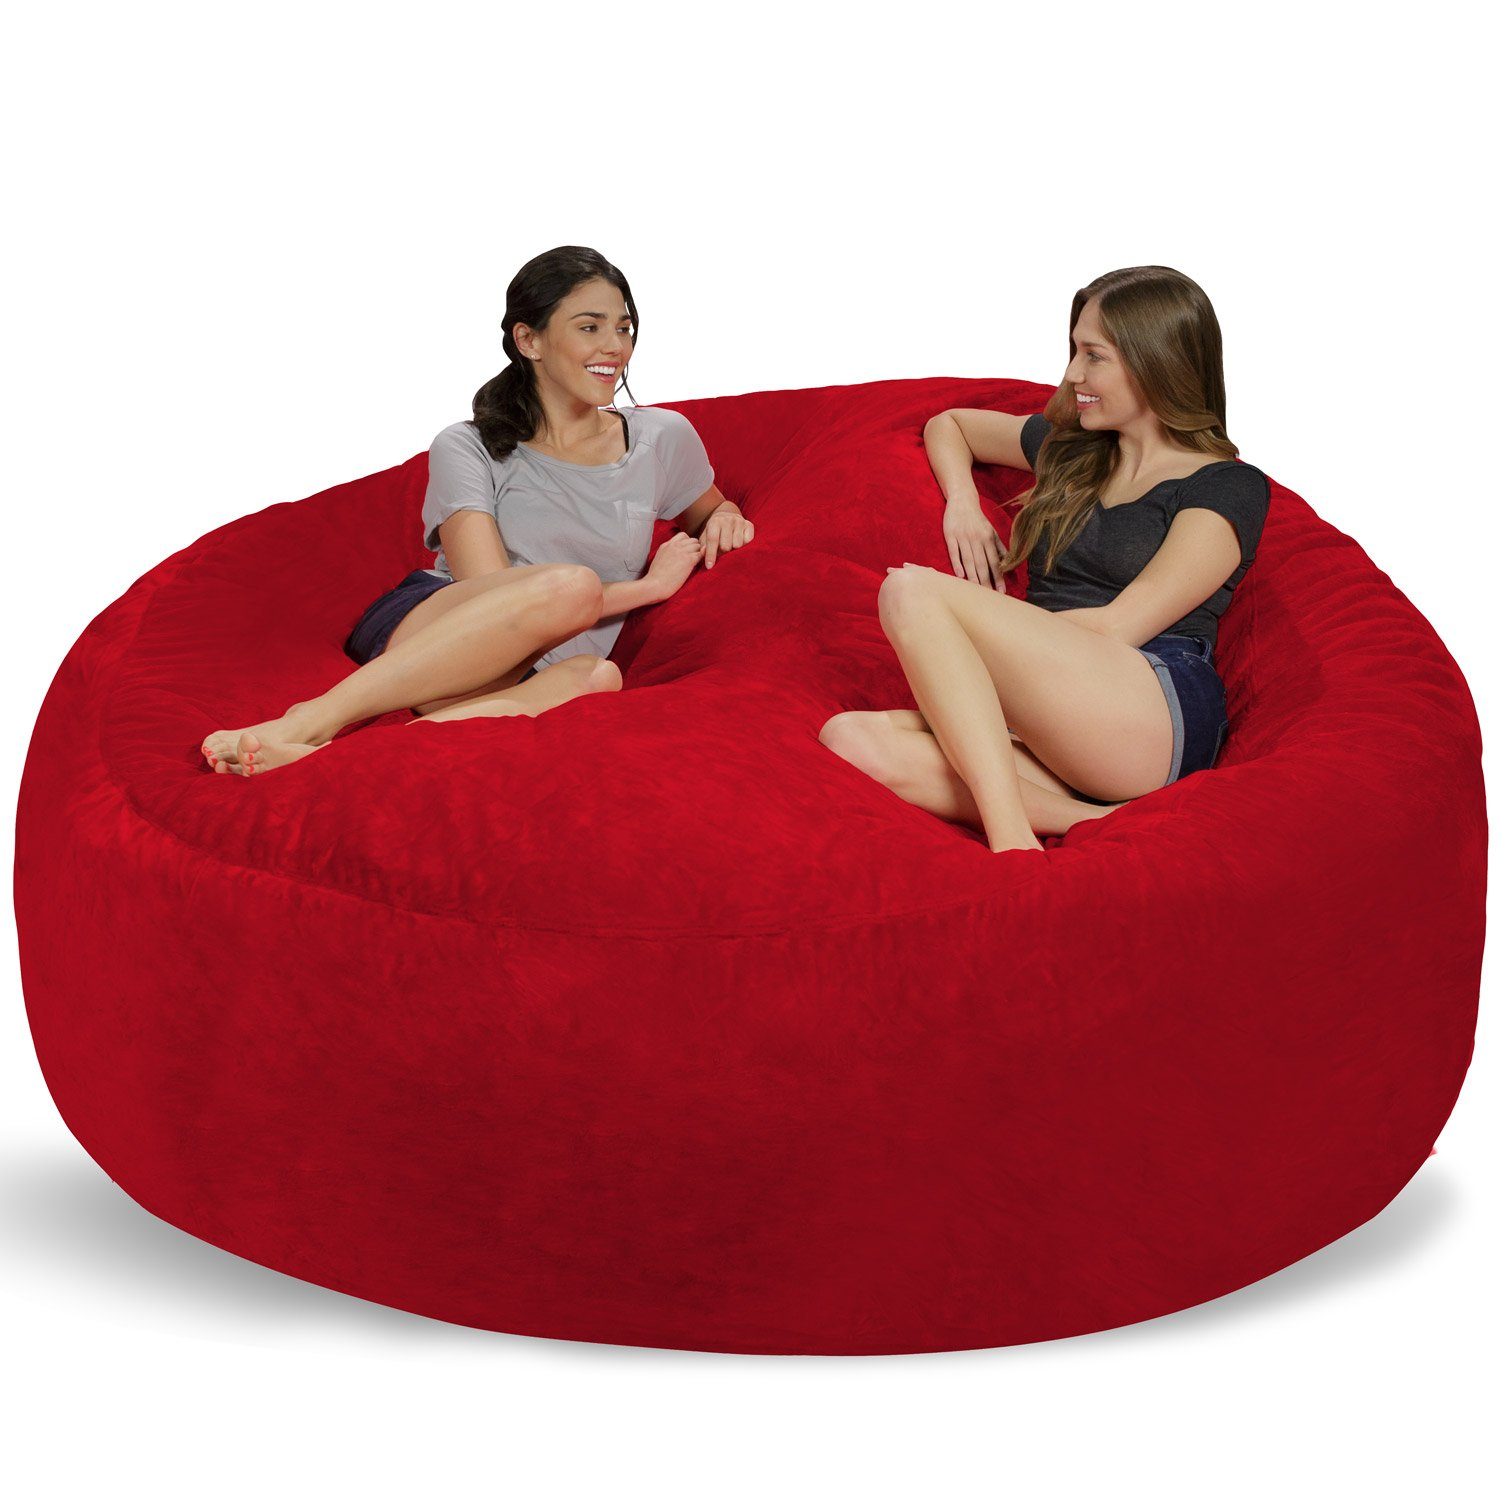 Amazon.com: Chill Sack - Bean Bags Huge Bean Bag, 8', Red Furry: Kitchen &  Dining - Amazon.com: Chill Sack - Bean Bags Huge Bean Bag, 8', Red Furry